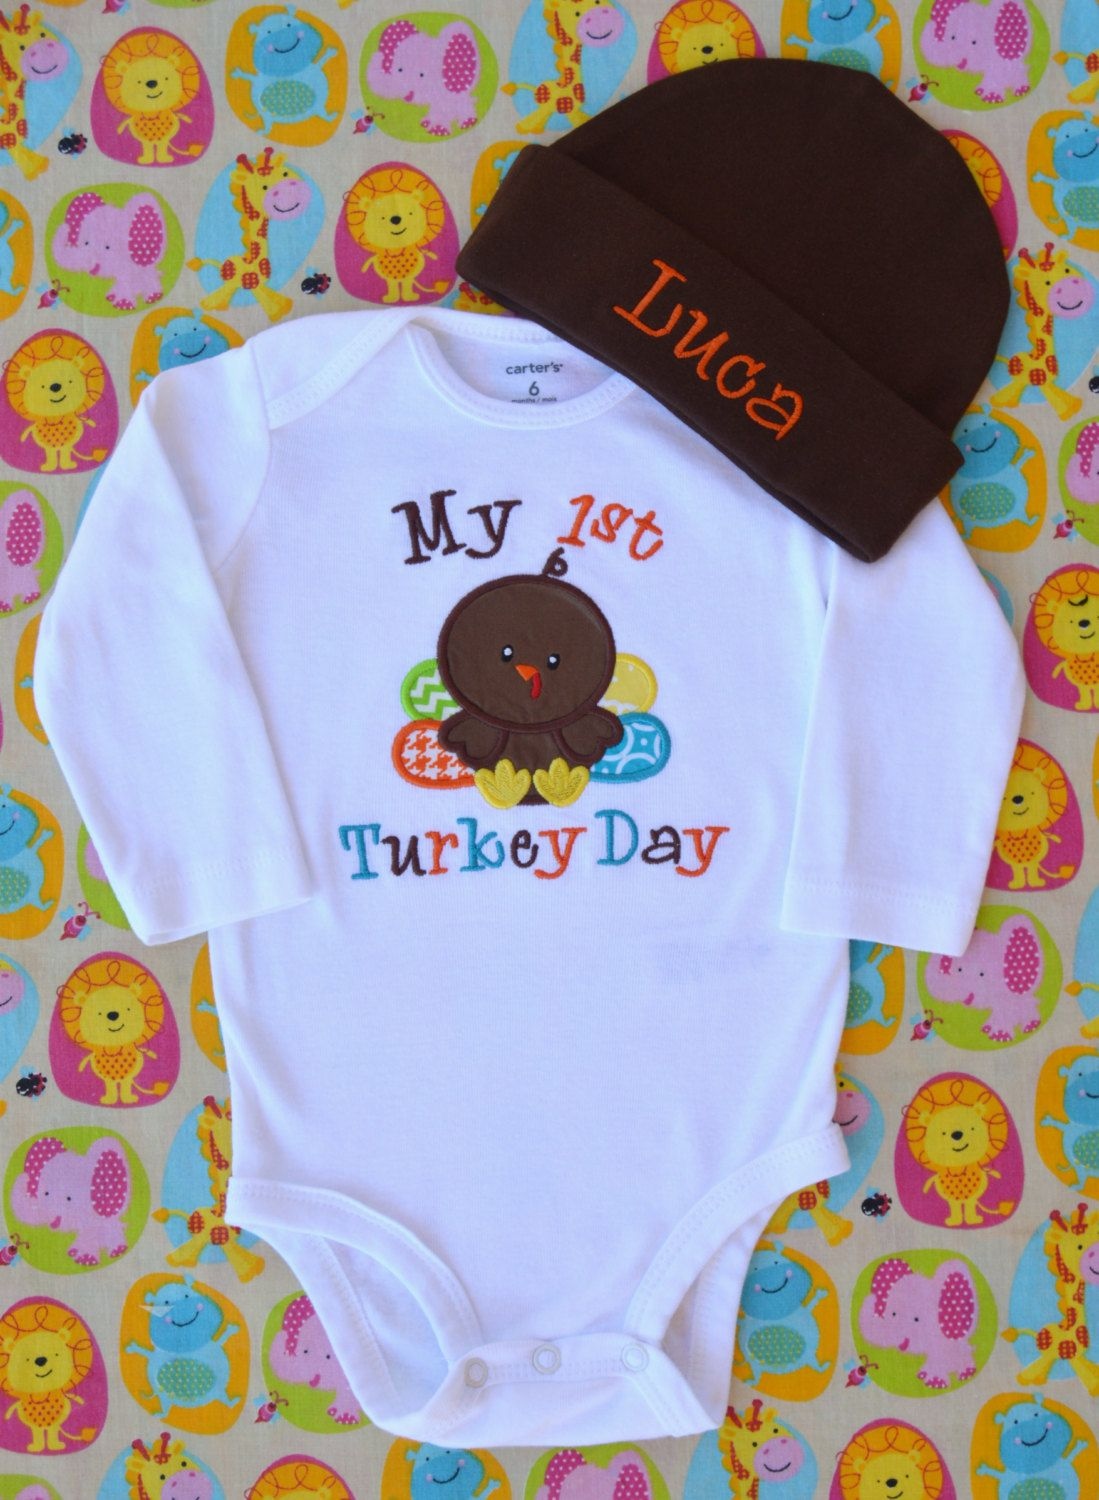 My First Thanksgiving Outfit Baby Boy Thanksgiving Outfit Baby Boy Clothes Thanksgiving Baby Outfits Thanksgiving Baby Outfit Boy My First Thanksgiving Outfit